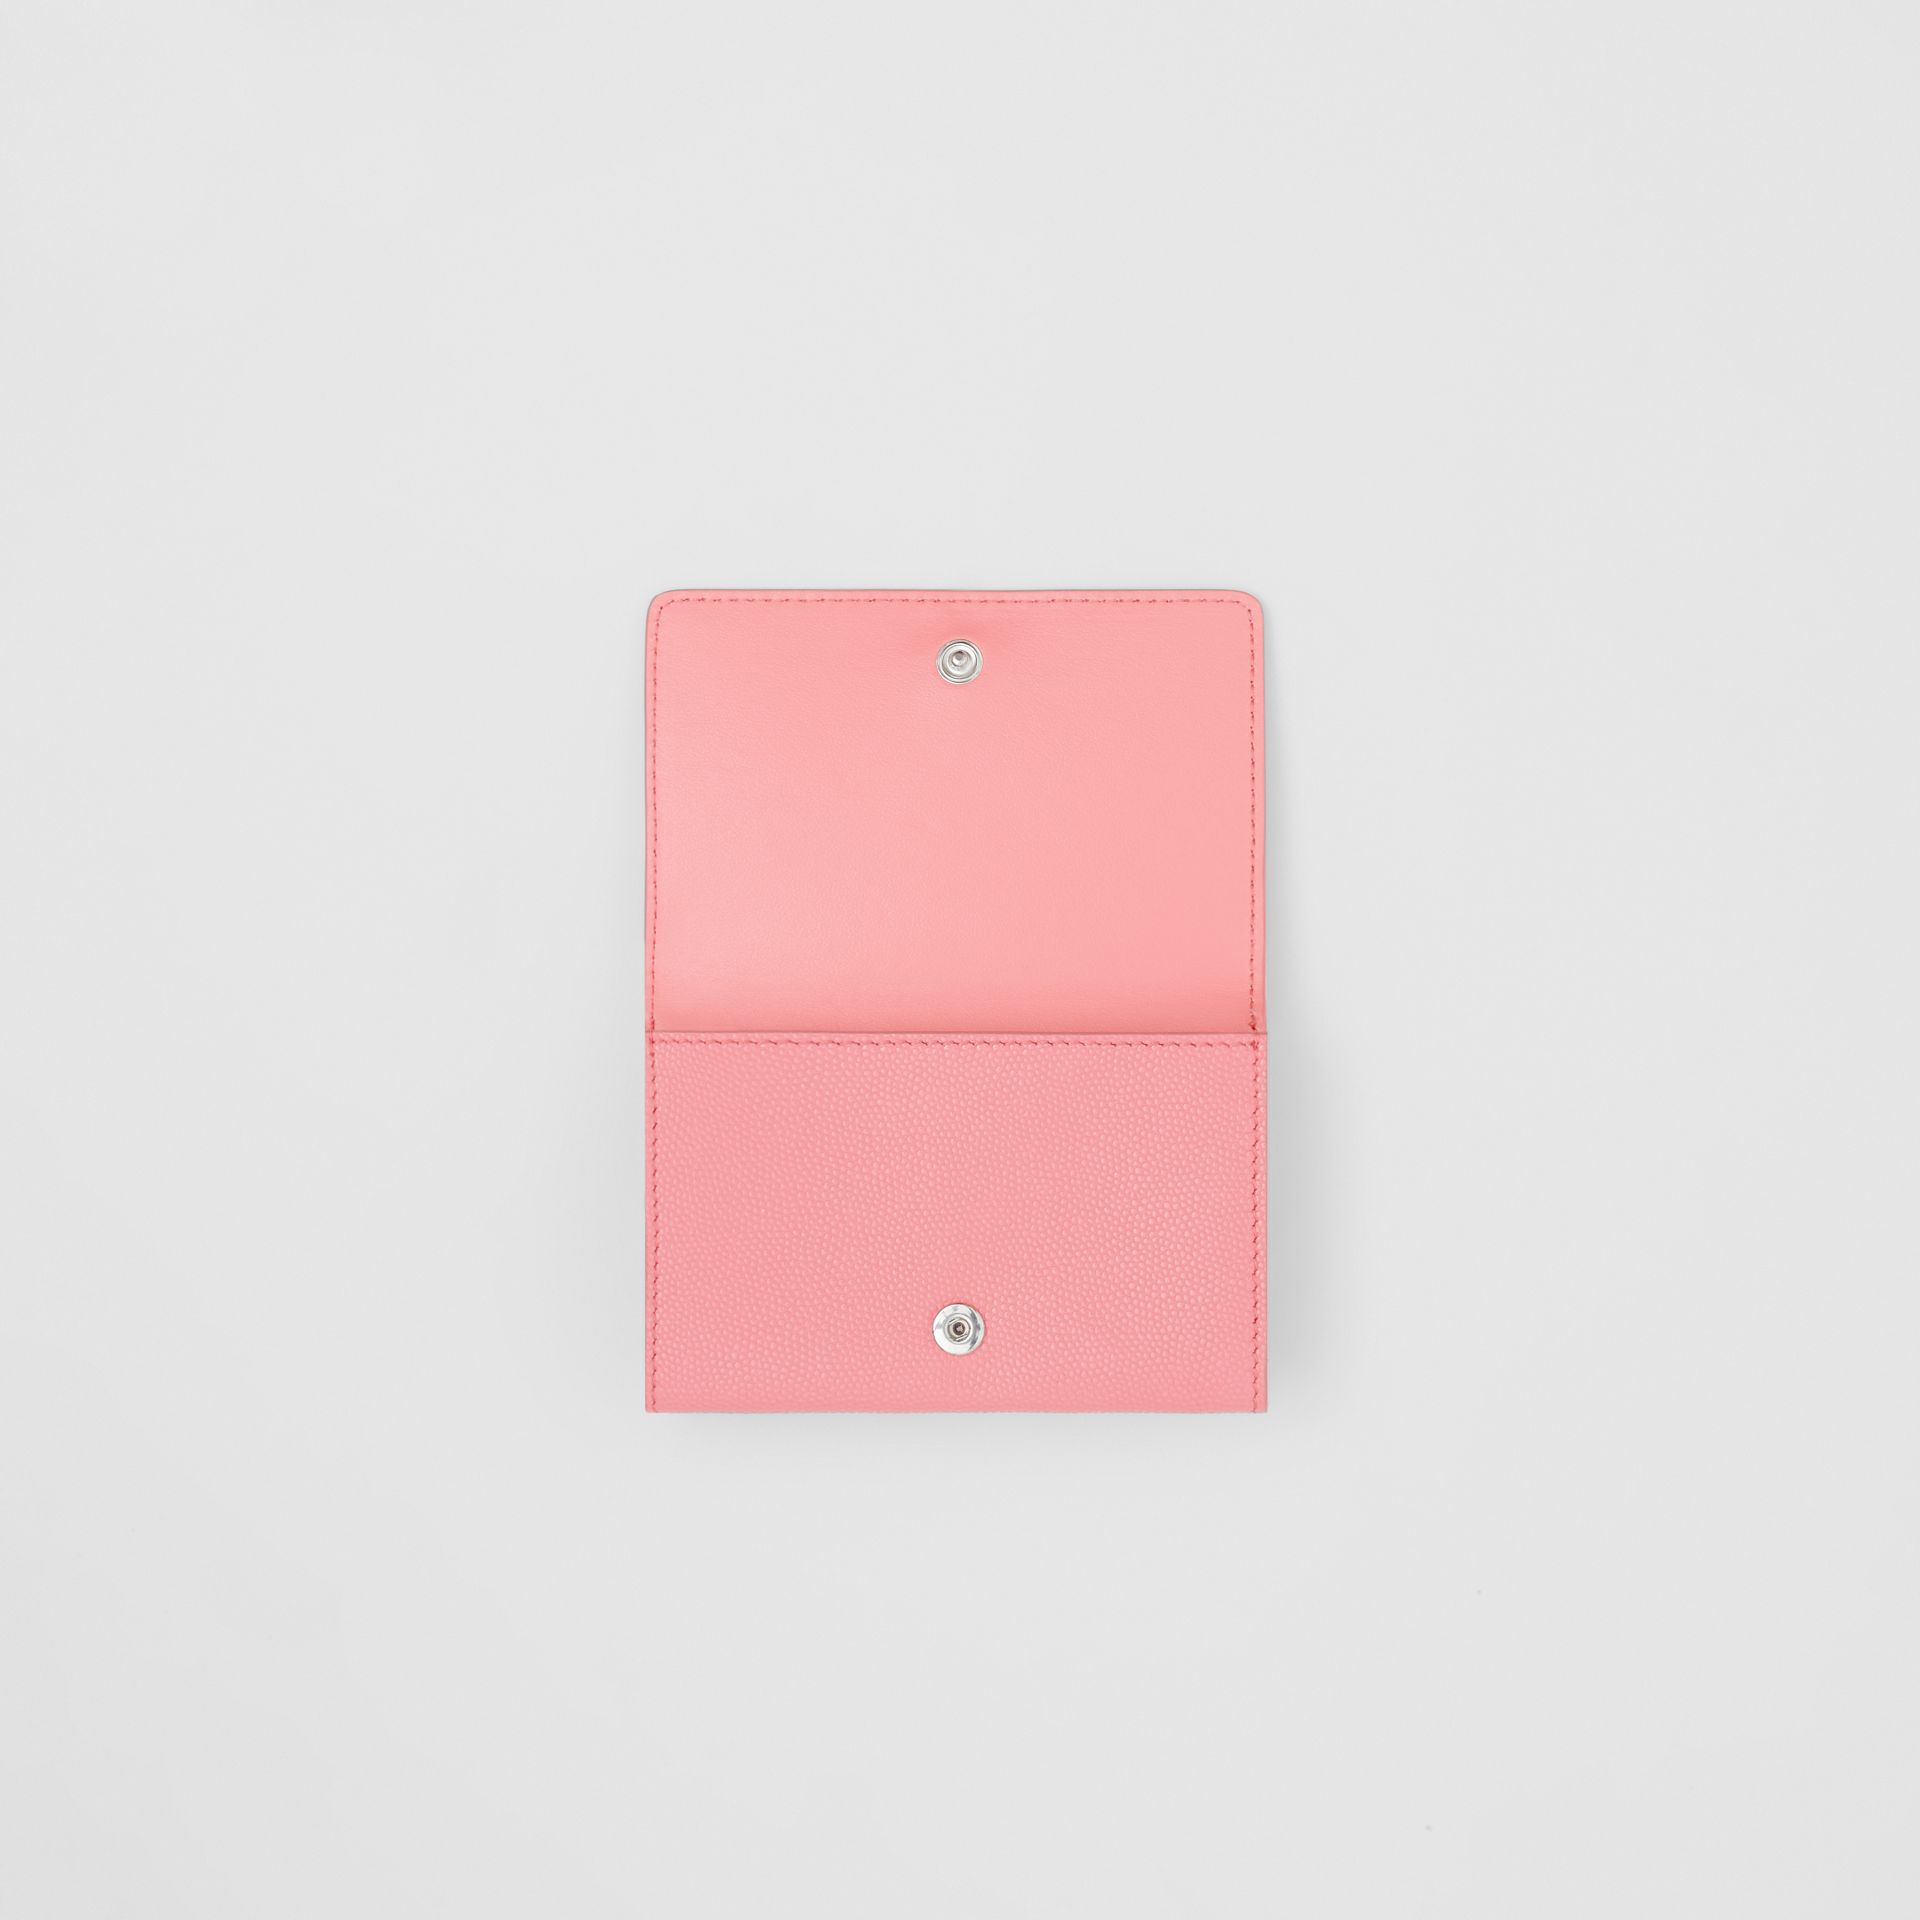 Small Grainy Leather Folding Wallet in Candy Floss/palladio - Women | Burberry United Kingdom - gallery image 5